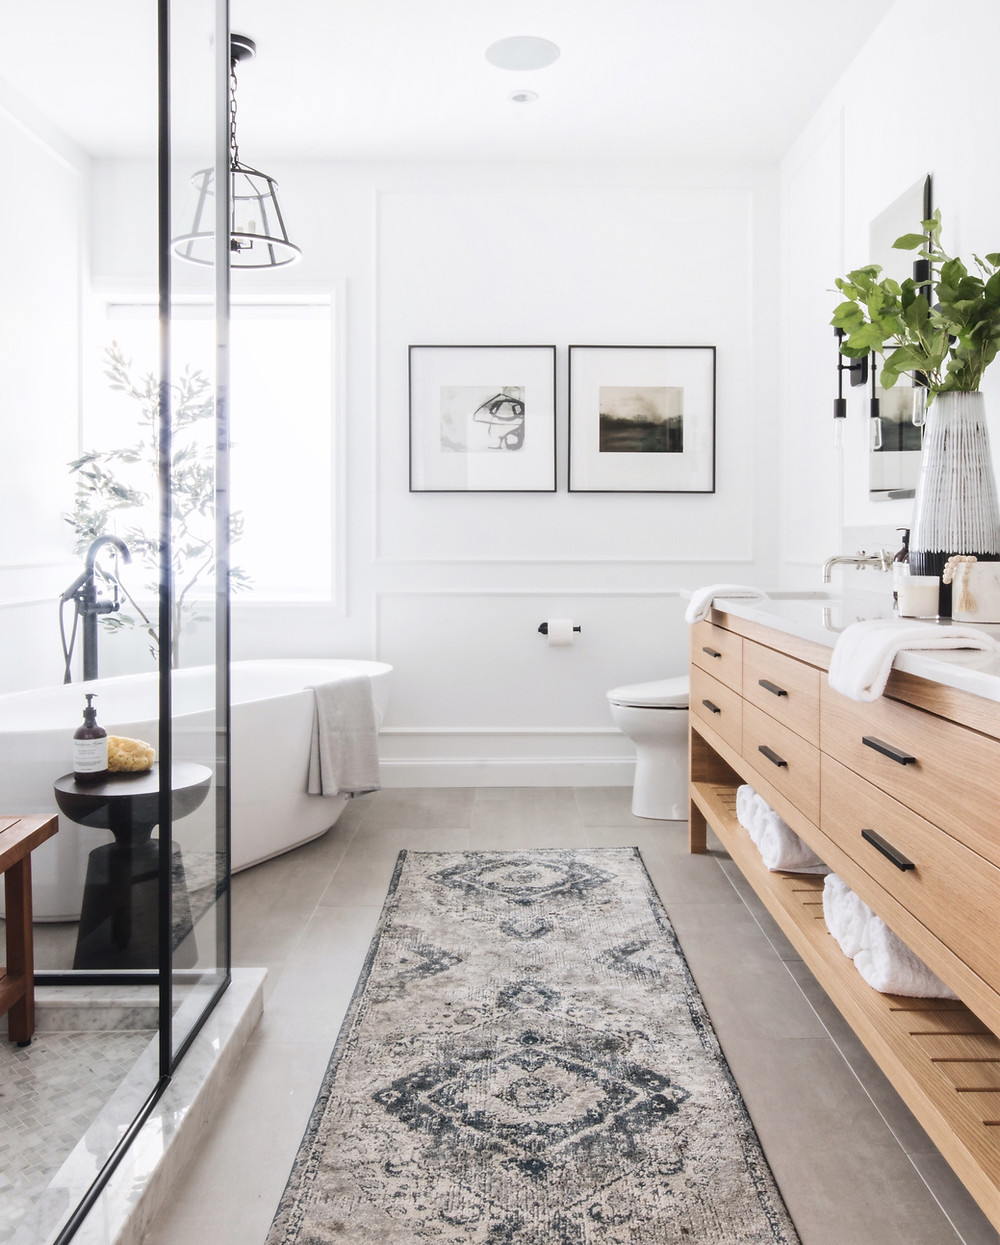 A serene bathroom escape in this warm modern design by Leclair Decor. Soft whites and warm oak compliments a historic home in Westmount Montreal.